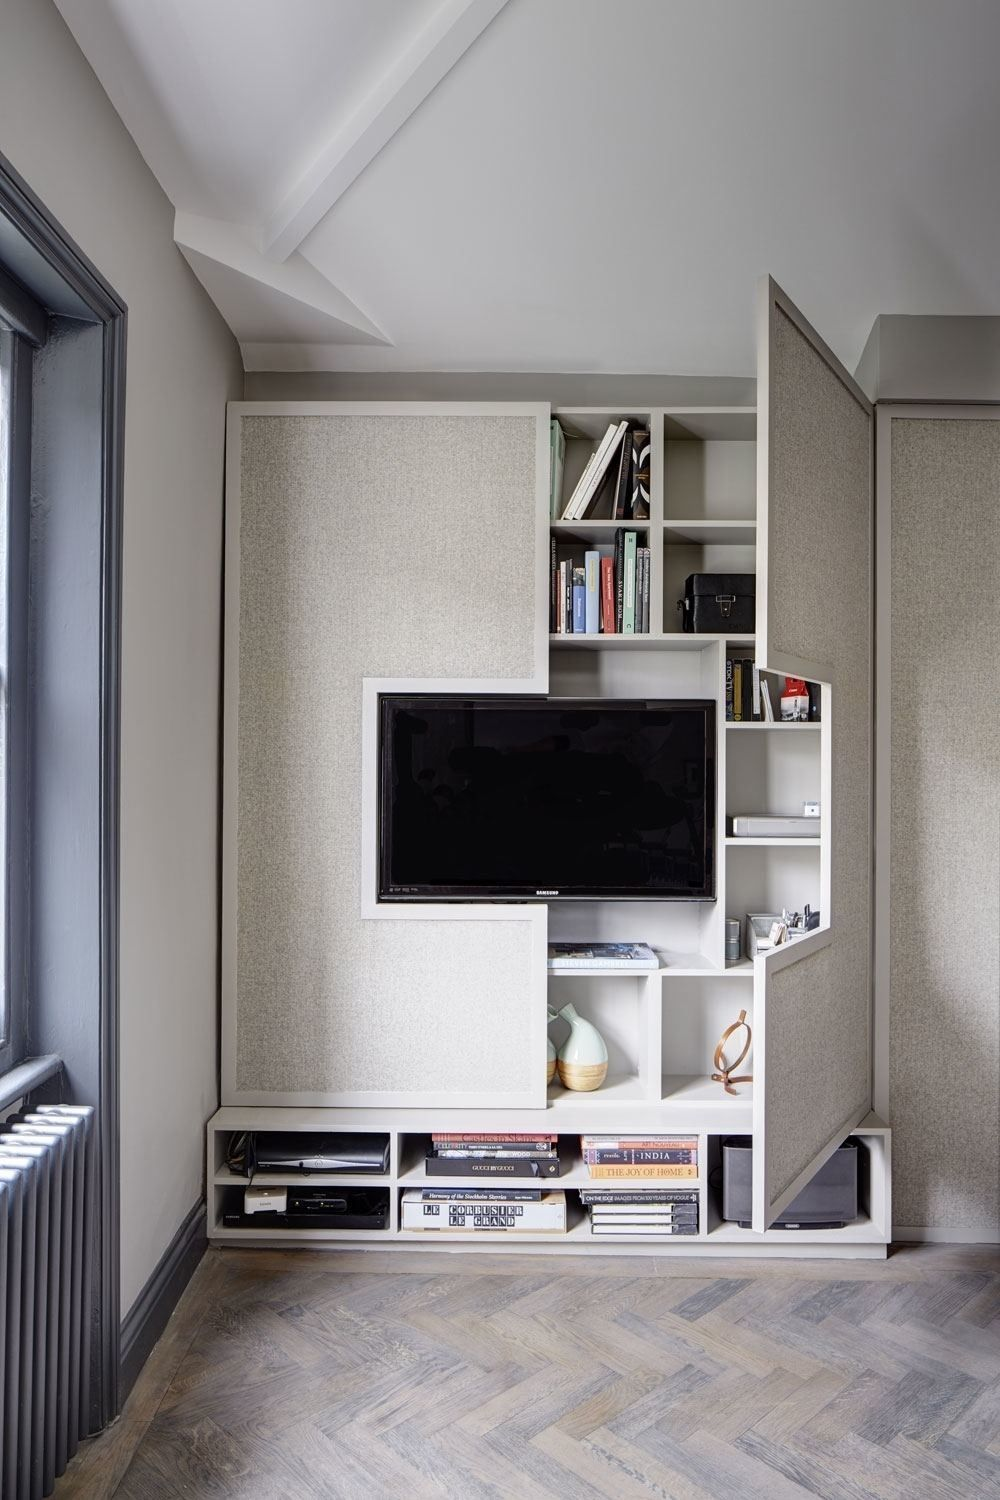 Compact Apartment With Folding Walls And Tons Of Hidden Storage[Video]